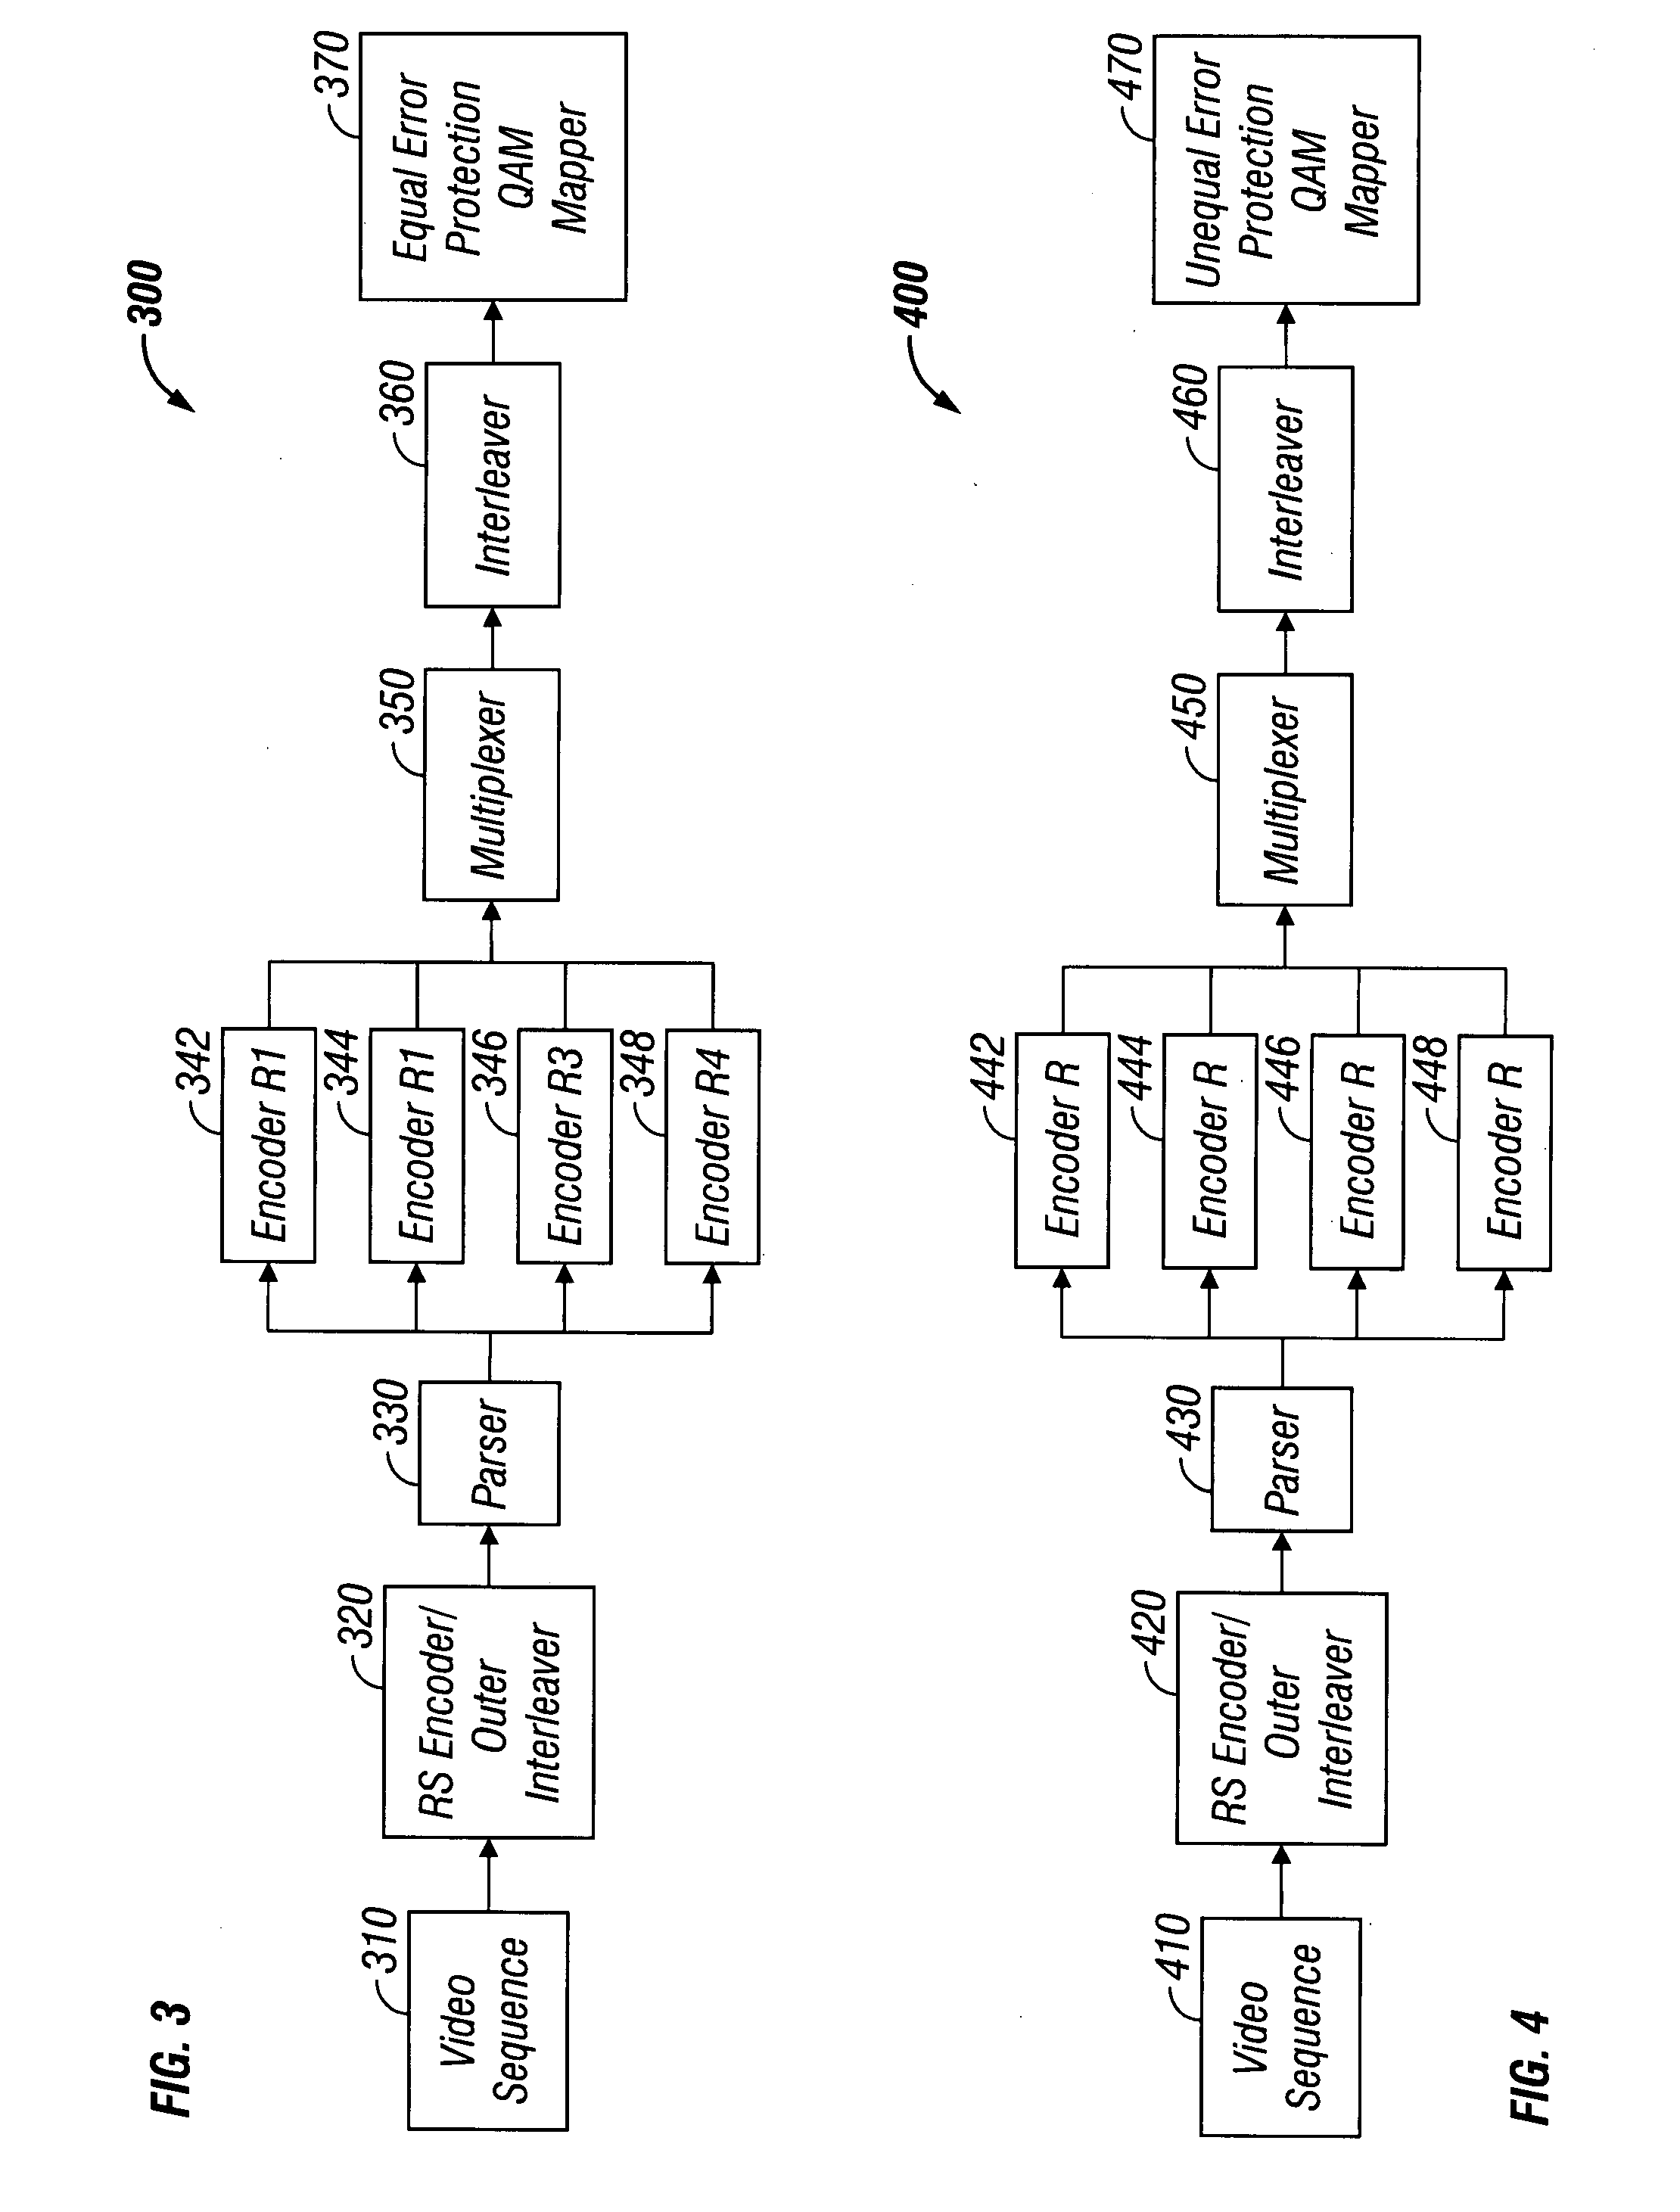 Multiplex Definition Patent Us20070286103 System And Method For Digital